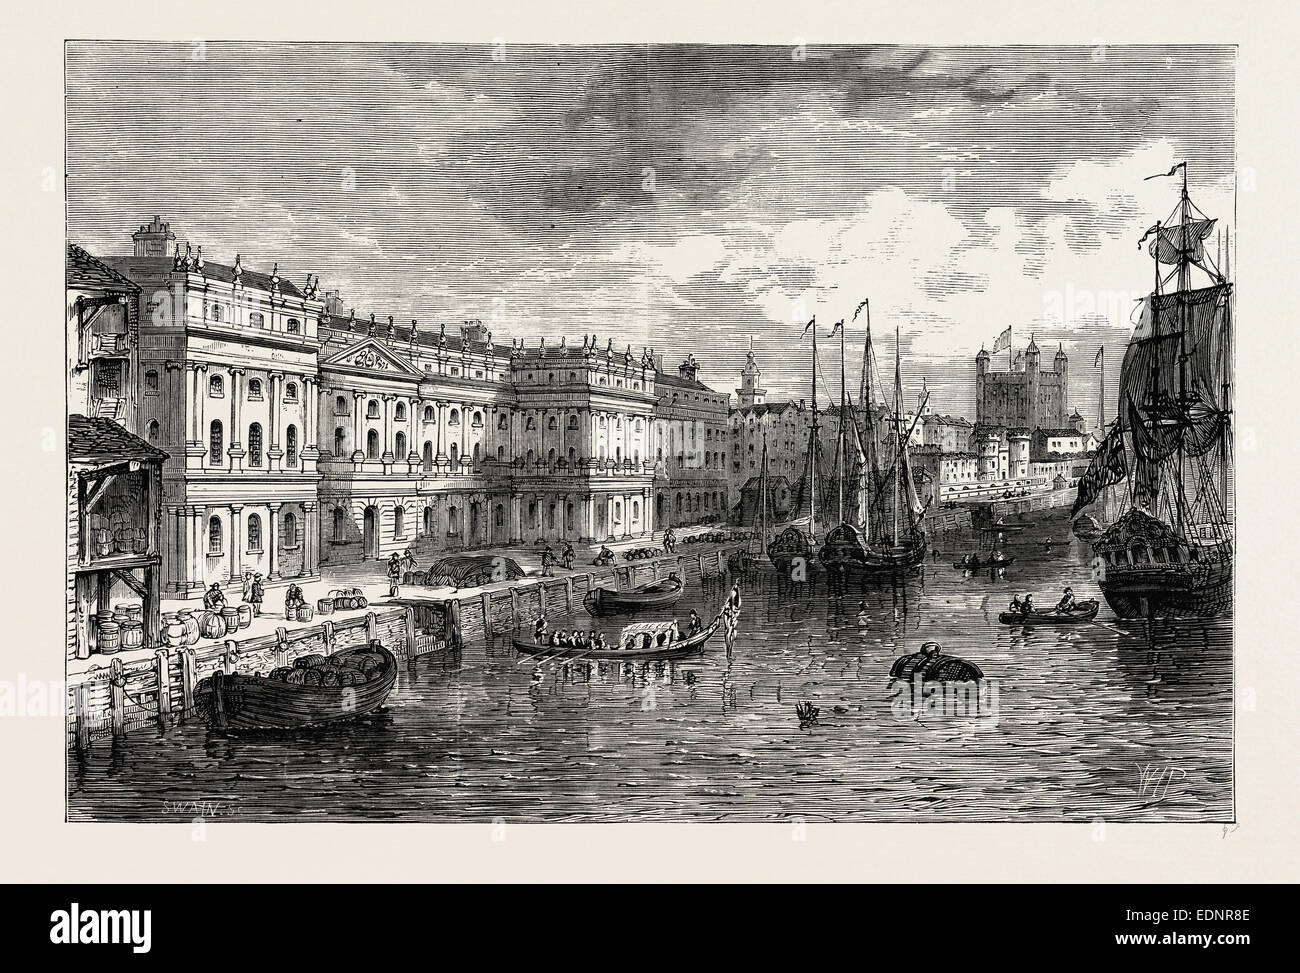 THE OLD CUSTOM HOUSE in 1753. London, UK, 19th century engraving. 18th